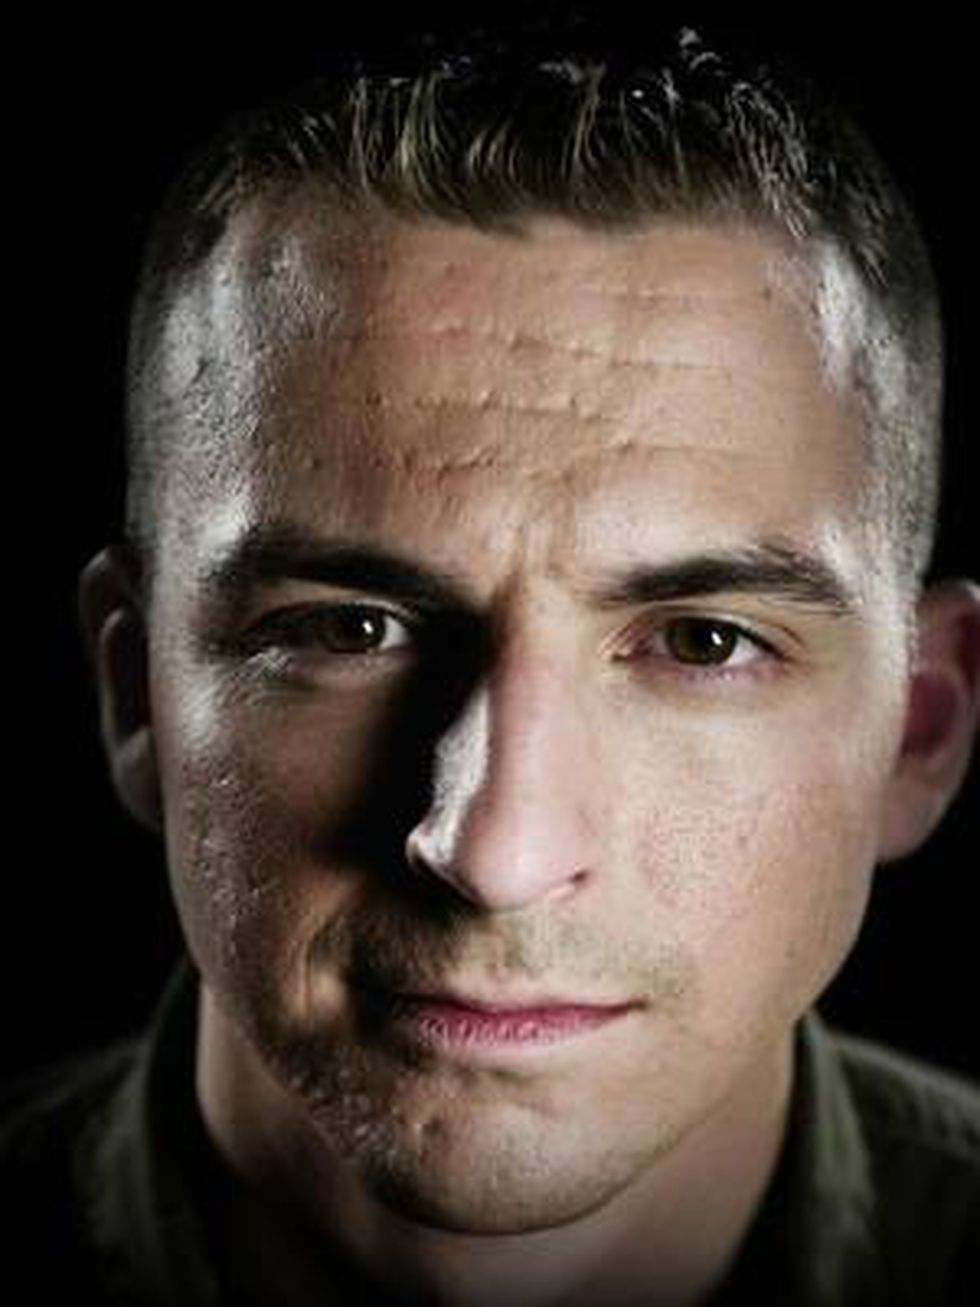 Brian Fleming is a combat-wounded Afghanistan war veteran. He was severely wounded in action by...